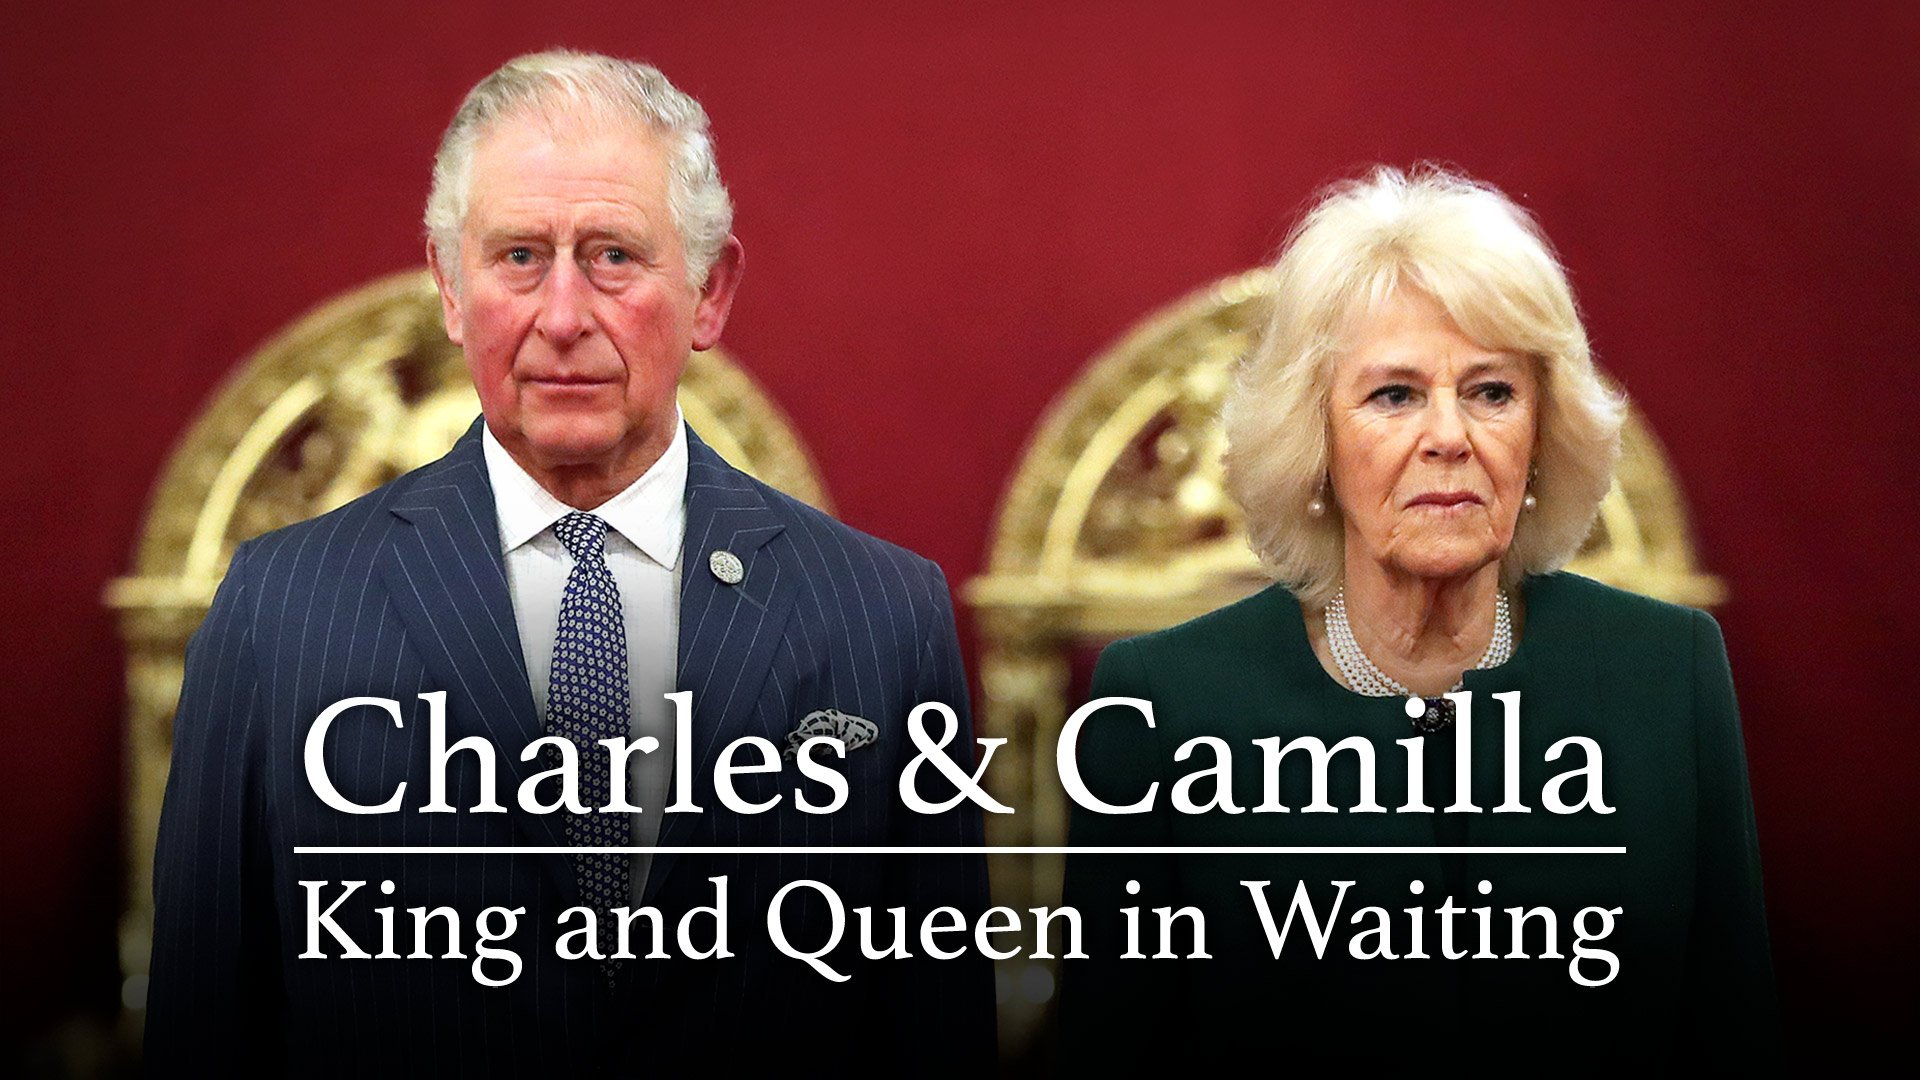 Charles & Camilla: King and Queen in Waiting on BritBox UK